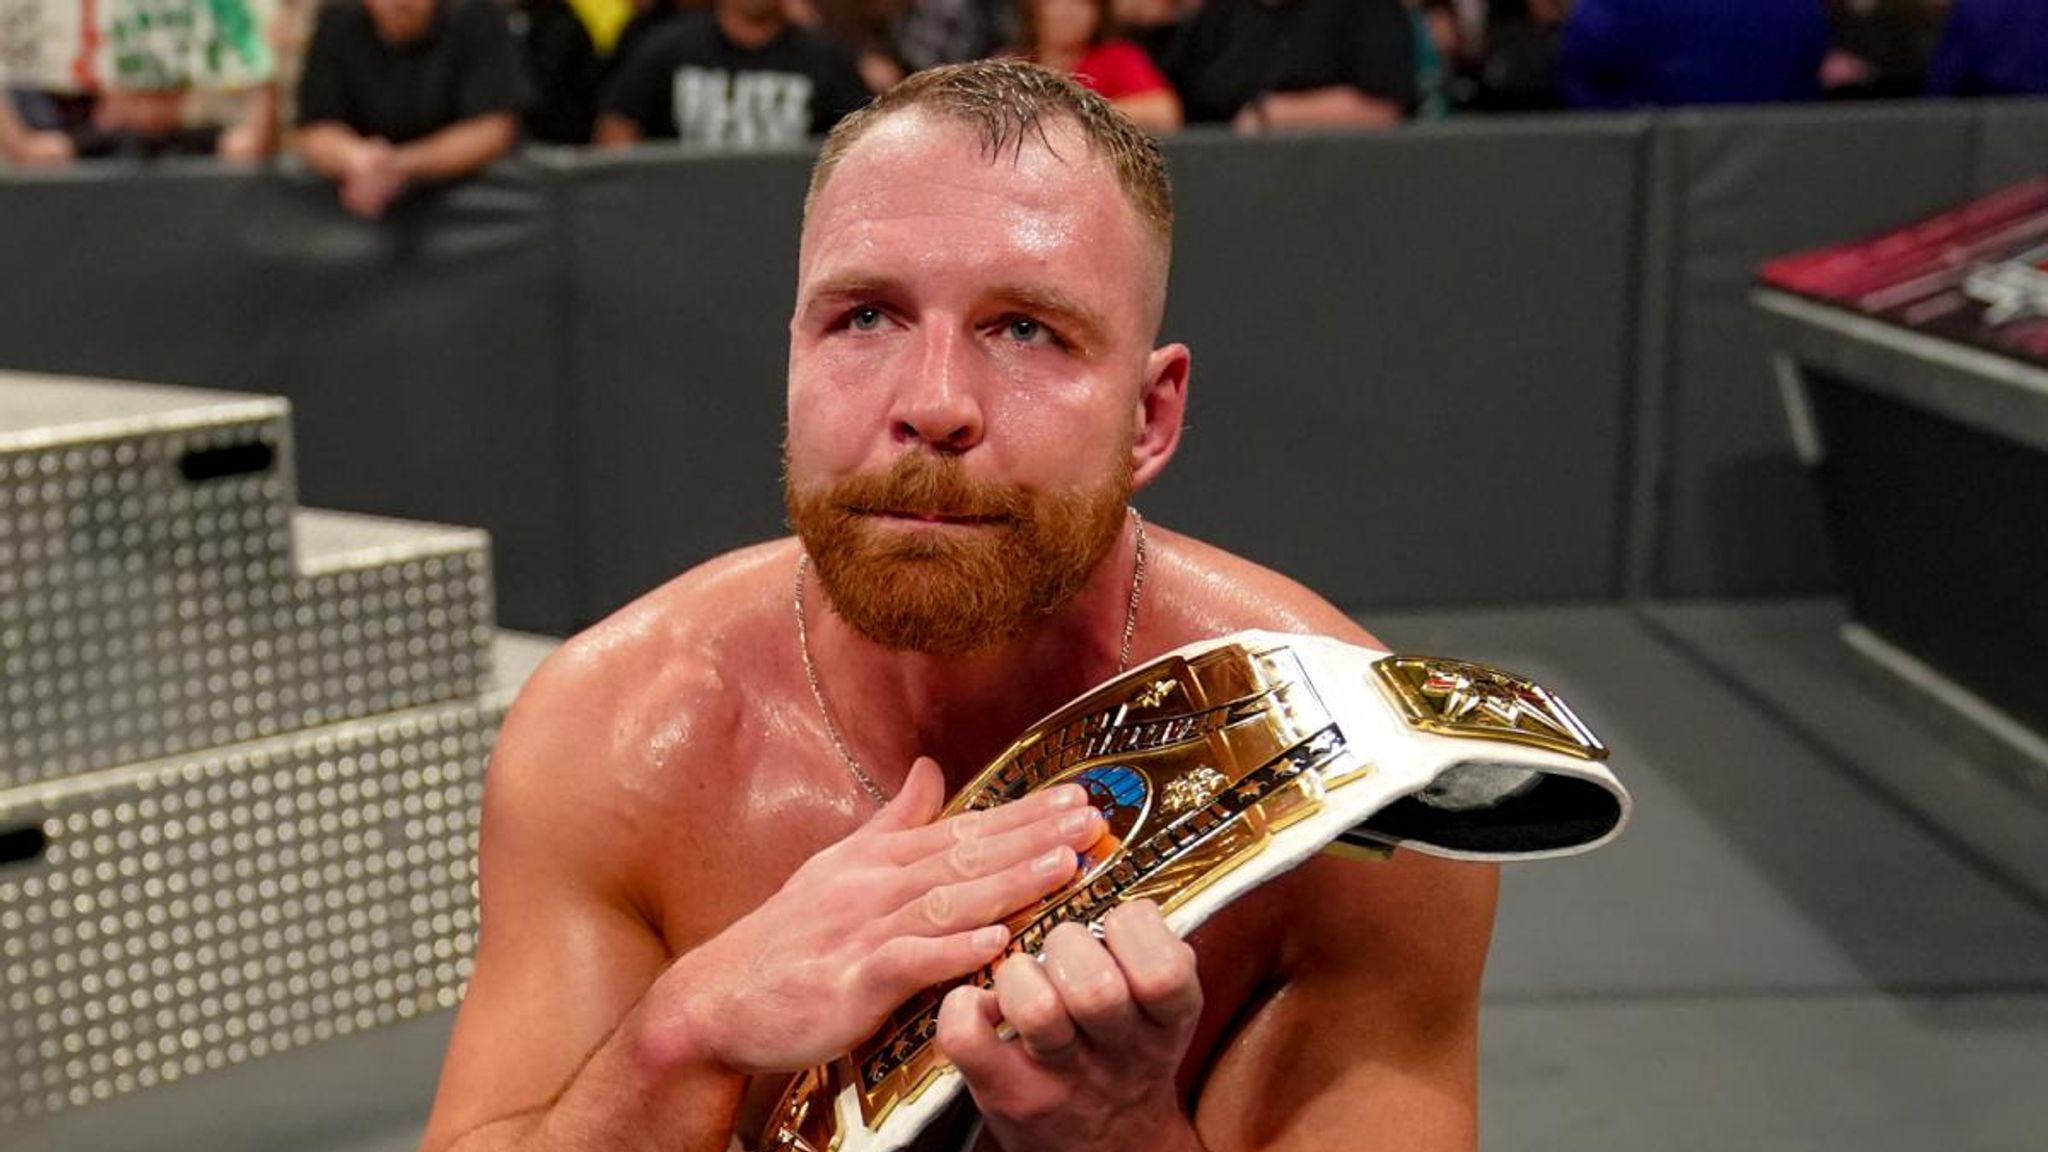 Dean Ambrose's WWE exit: Is it for real or just the latest pro